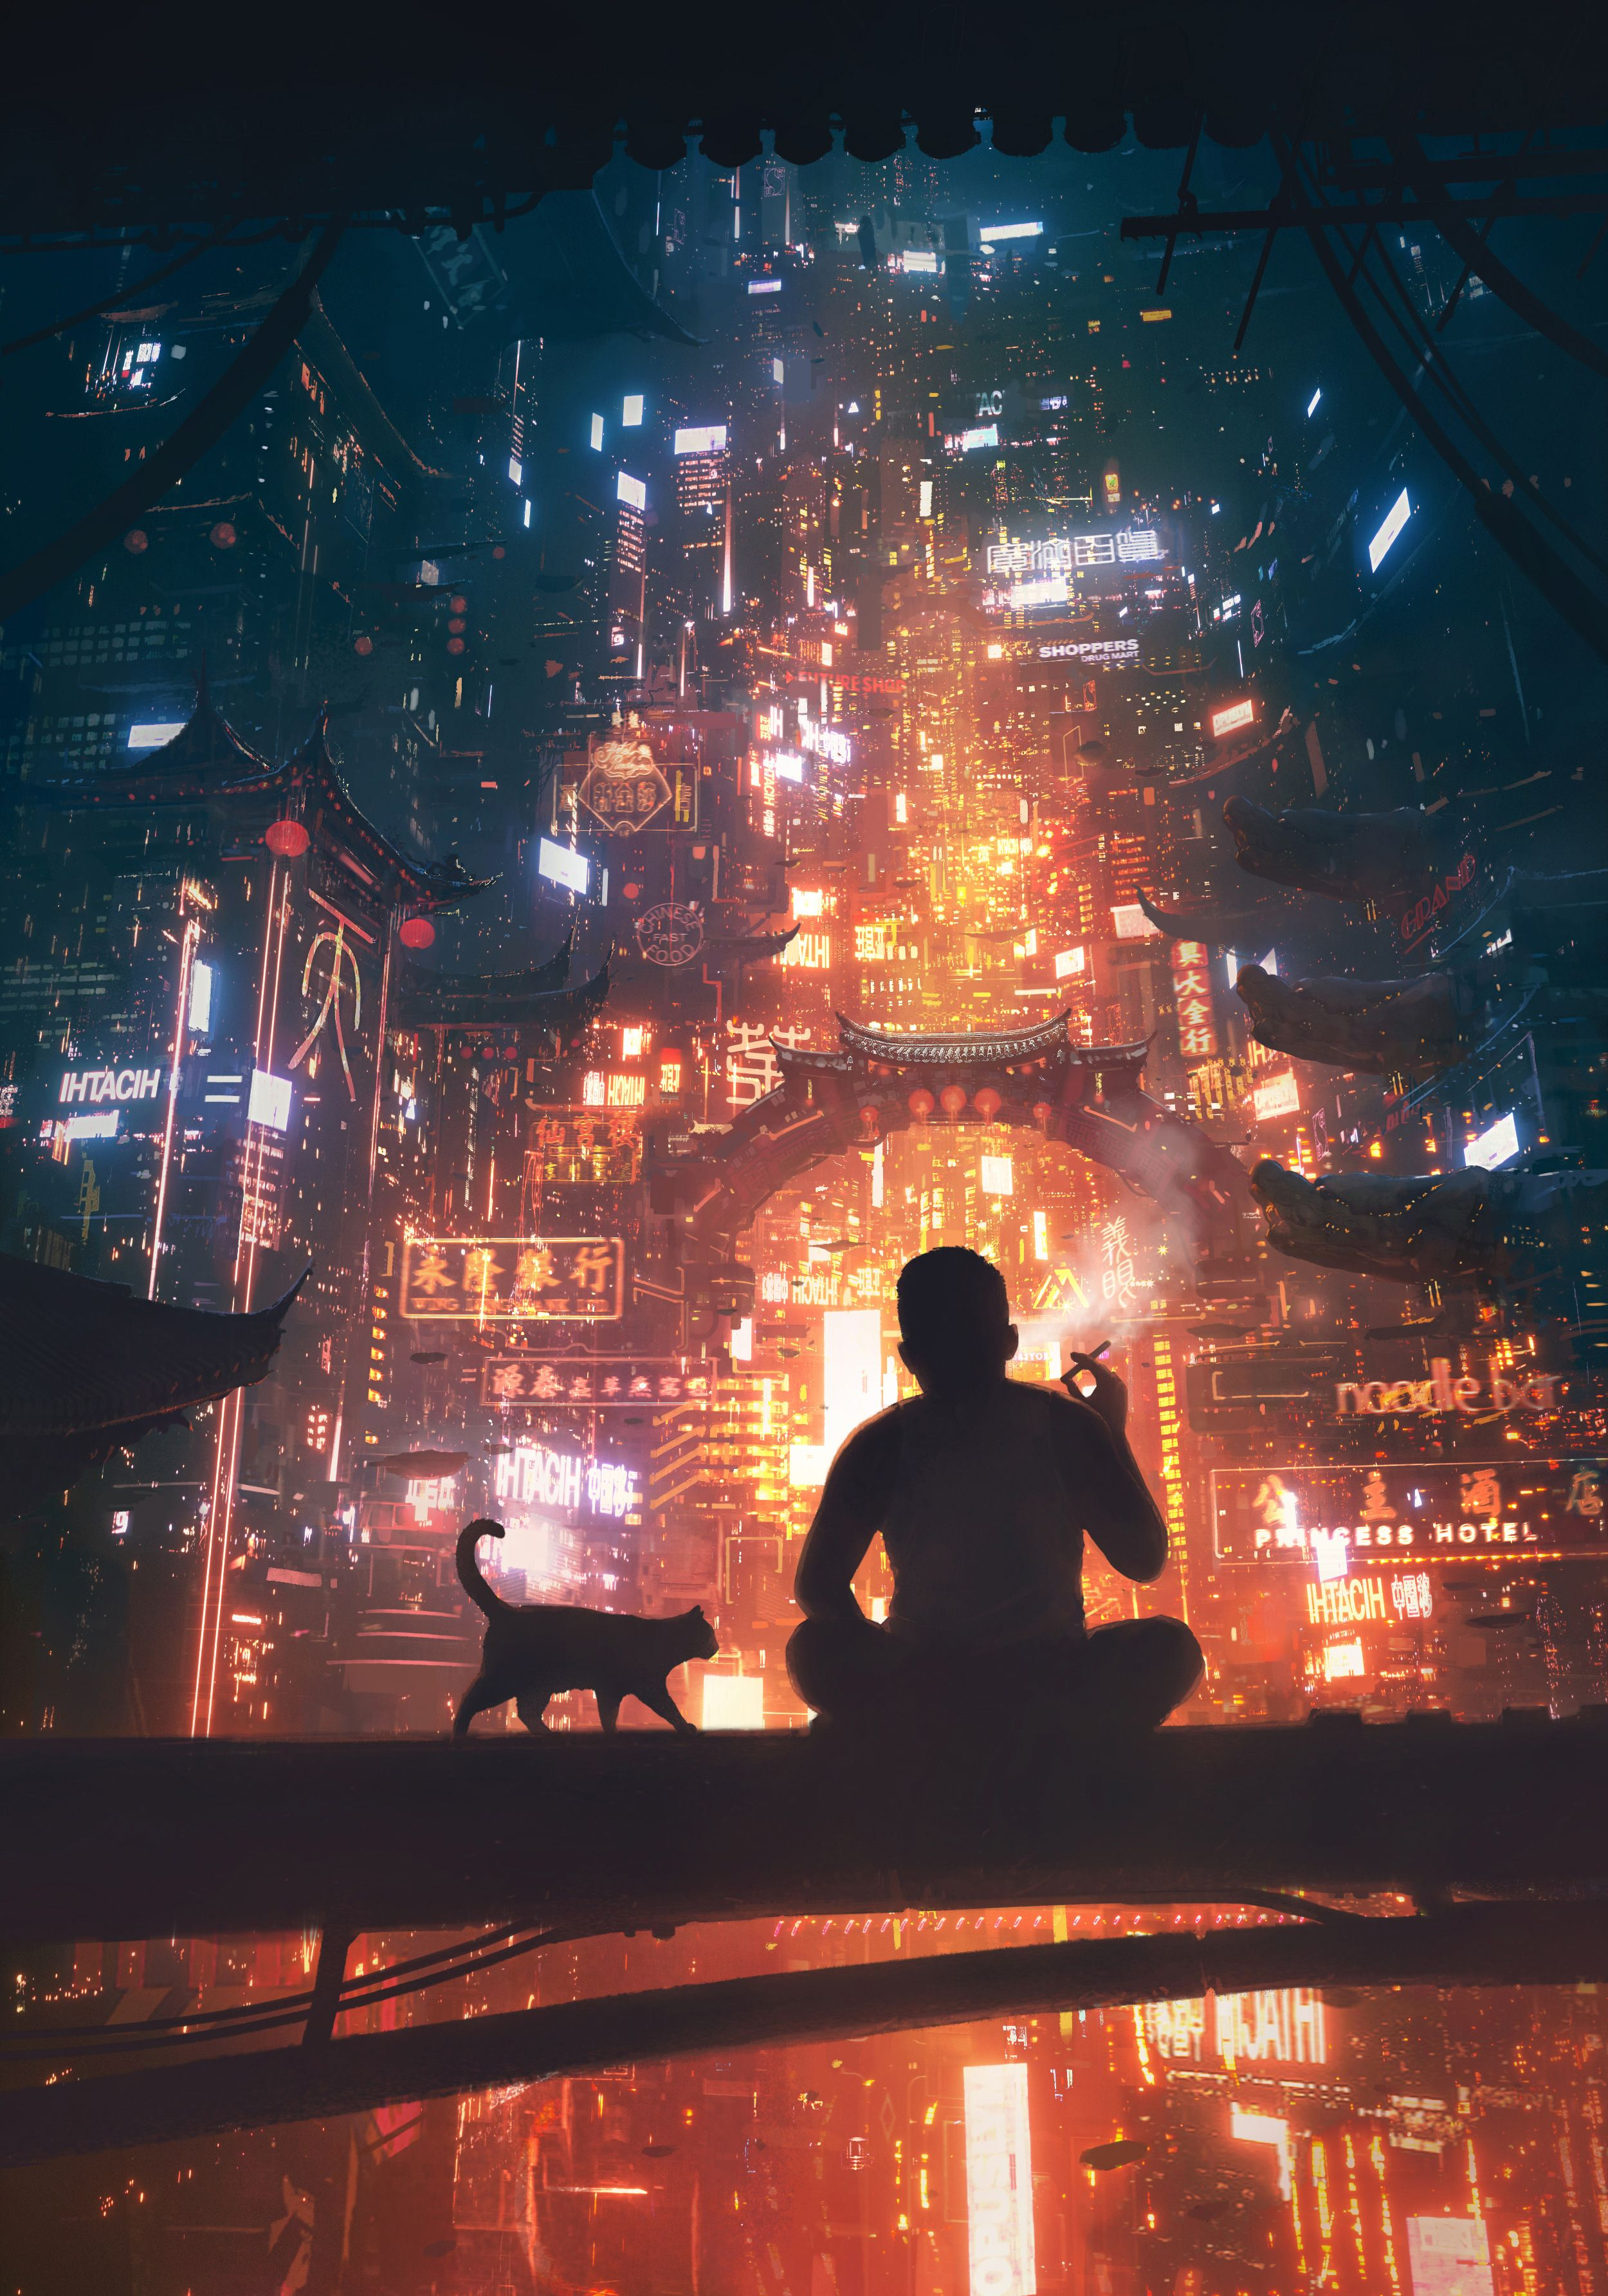 Pin by Thanh TanTan on meow in 2019 | Cyberpunk art, Art